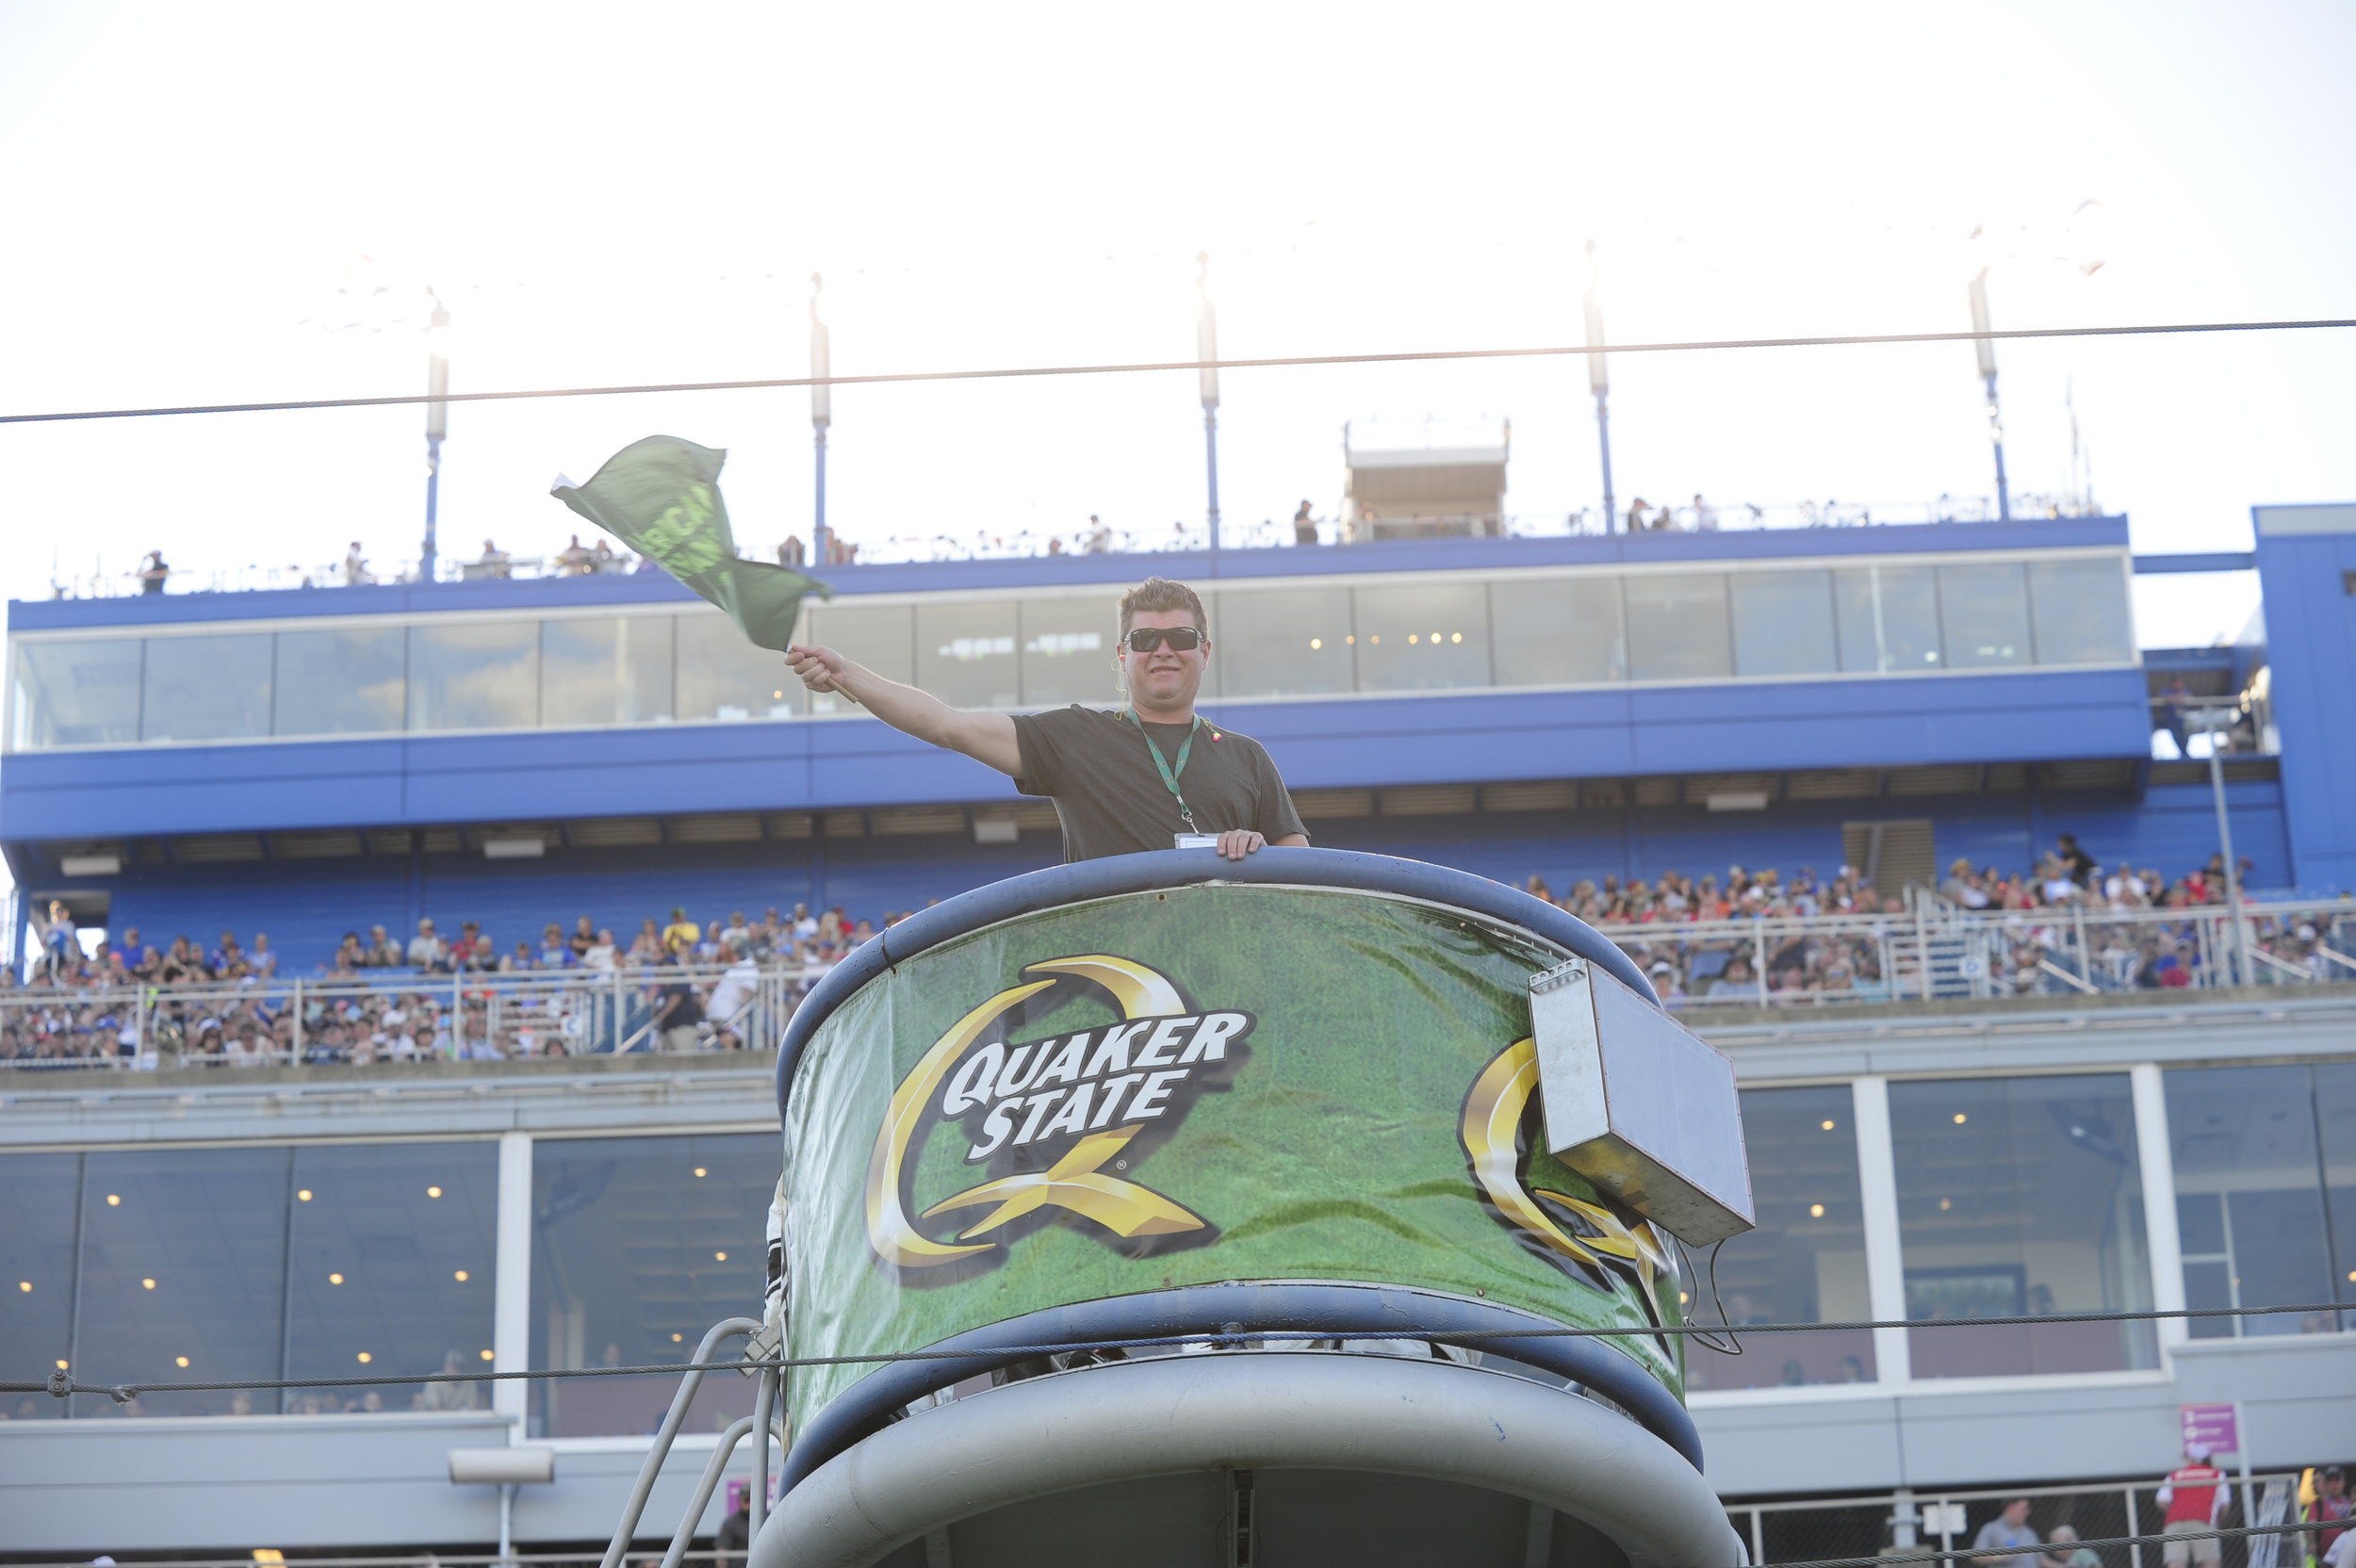 Jeff Couturier starting the Quaker State 400 in style by waving the green flag.